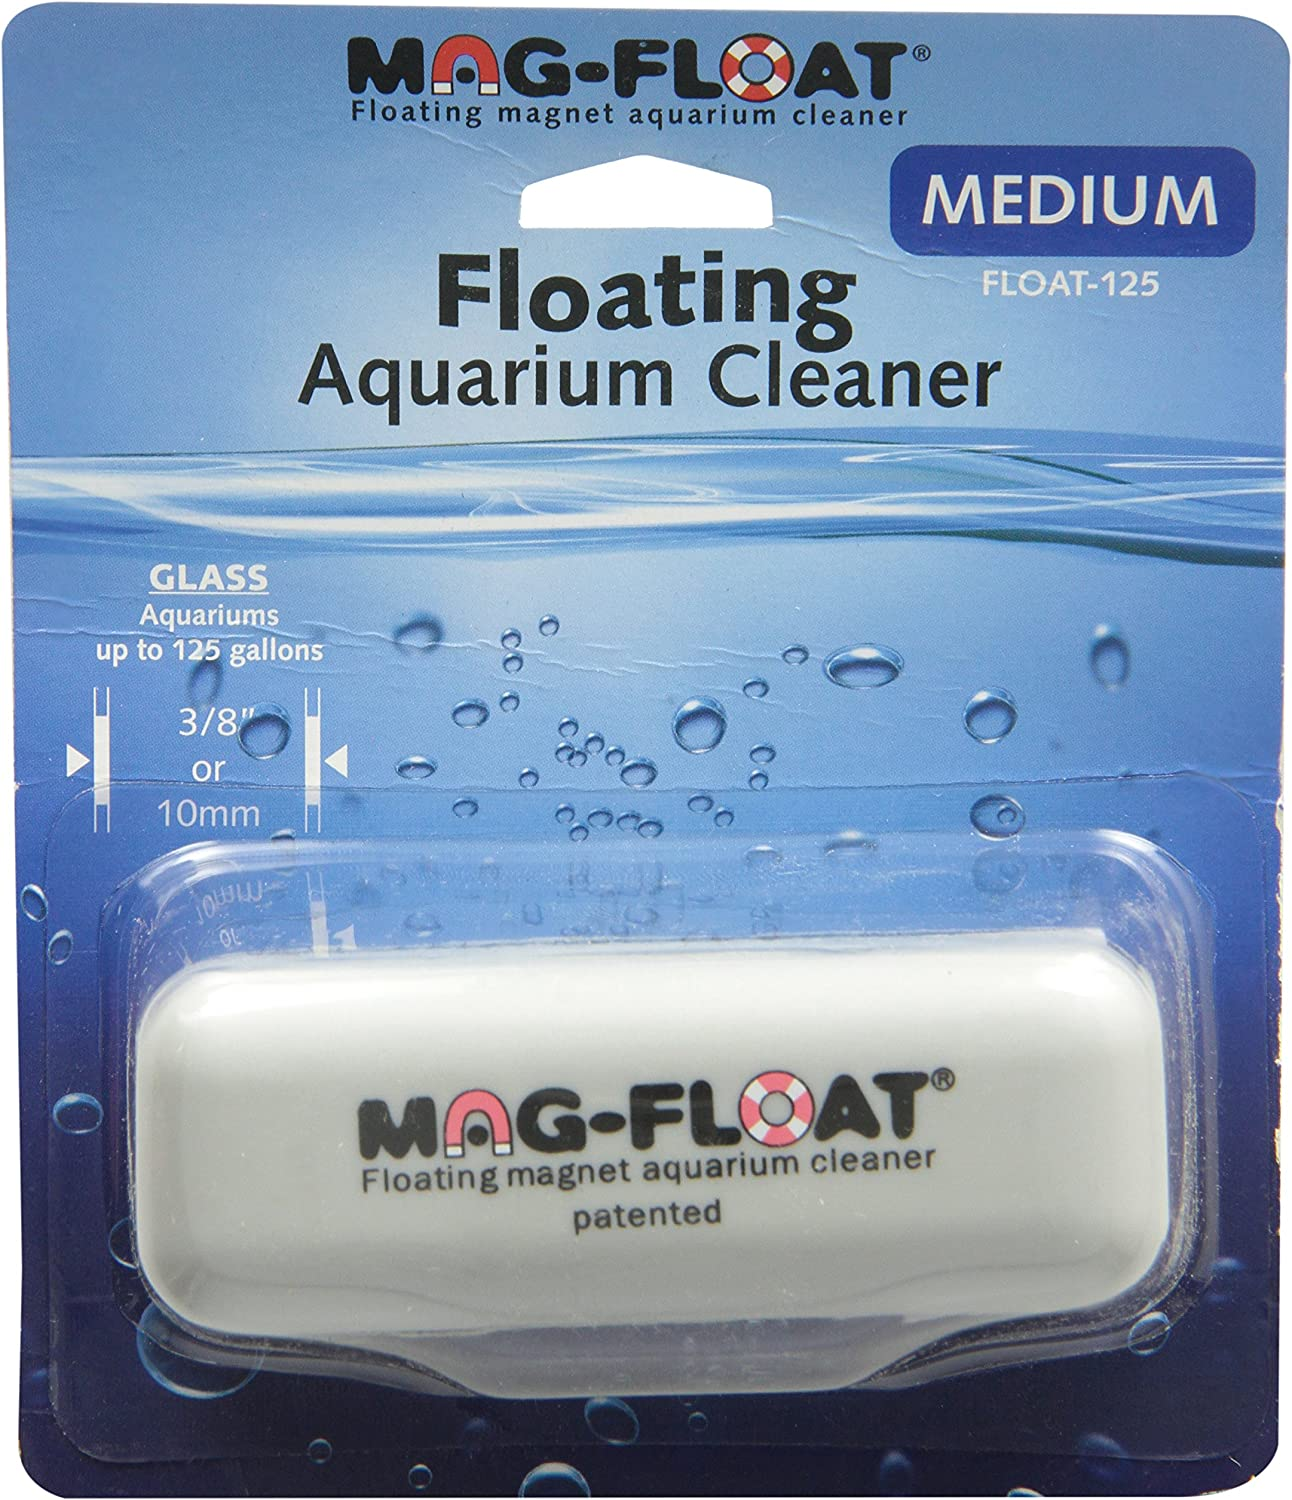 B0002568ZO Gulfstream Tropical AGU125MED Mag-Float Glass Aquarium Cleaner, Medium 91VGnEKVN7L